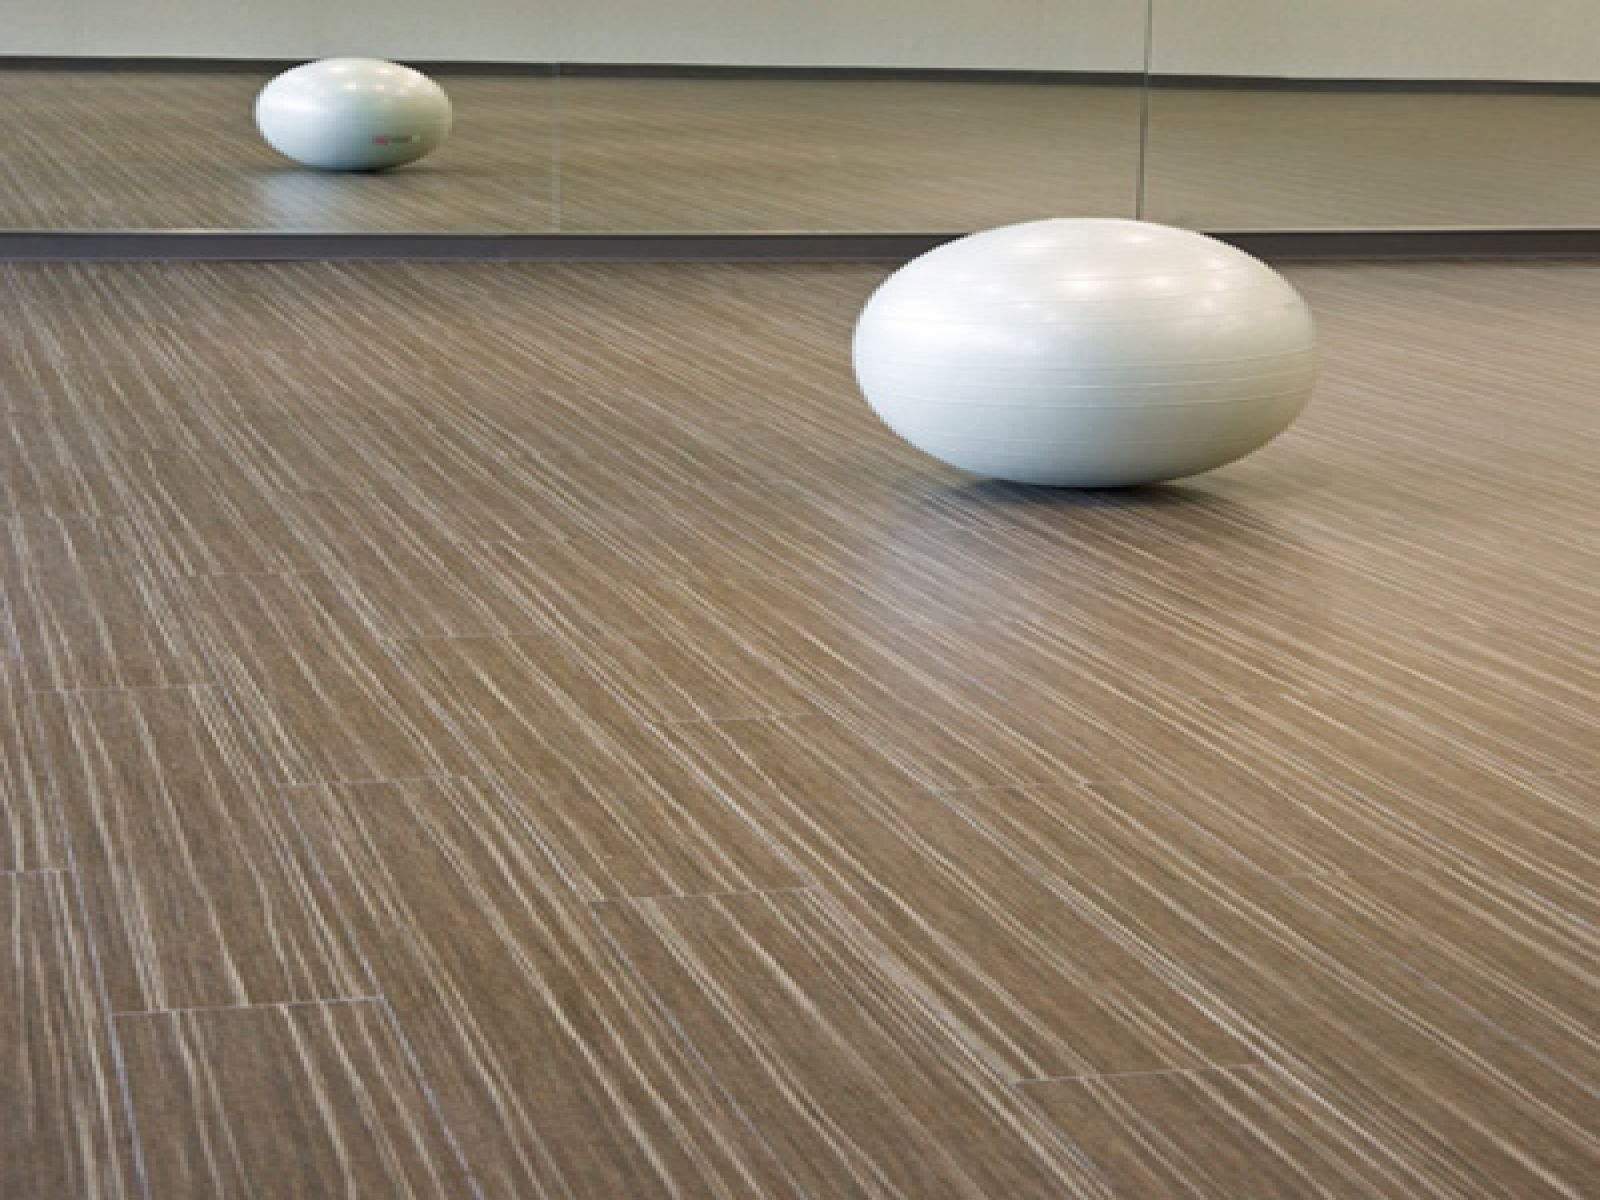 Vinyl flooring planks ideas httpbentleysbandbvinyl find out how to install vinyl floors from certified vinyl floor installers vinyl floors should only be installed by profesionals who have the necessary dailygadgetfo Gallery